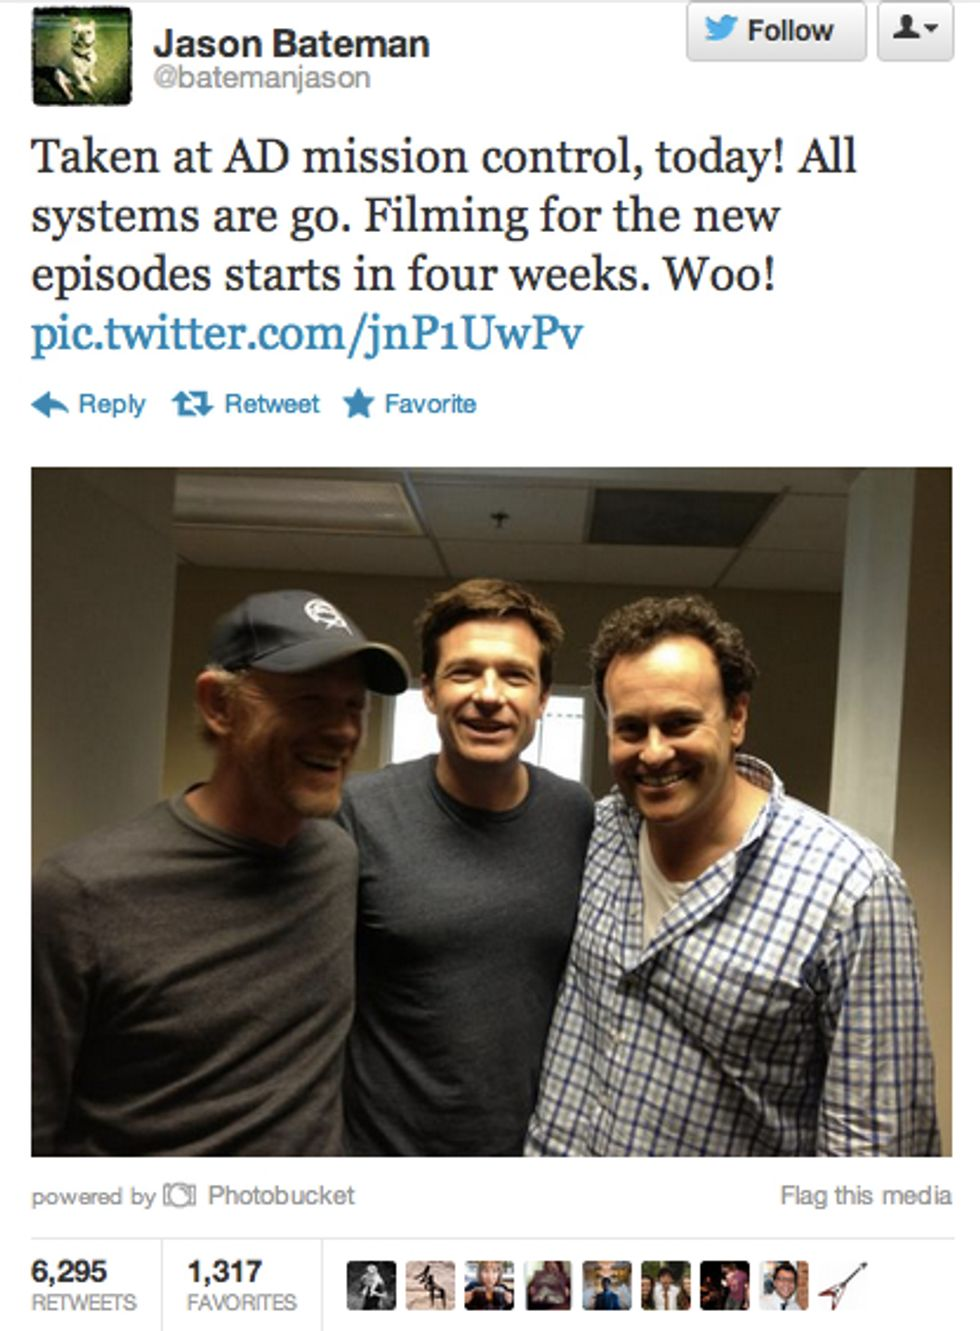 More Photographic Proof that the Arrested Development Revival is Coming (and Shooting in Four Weeks)